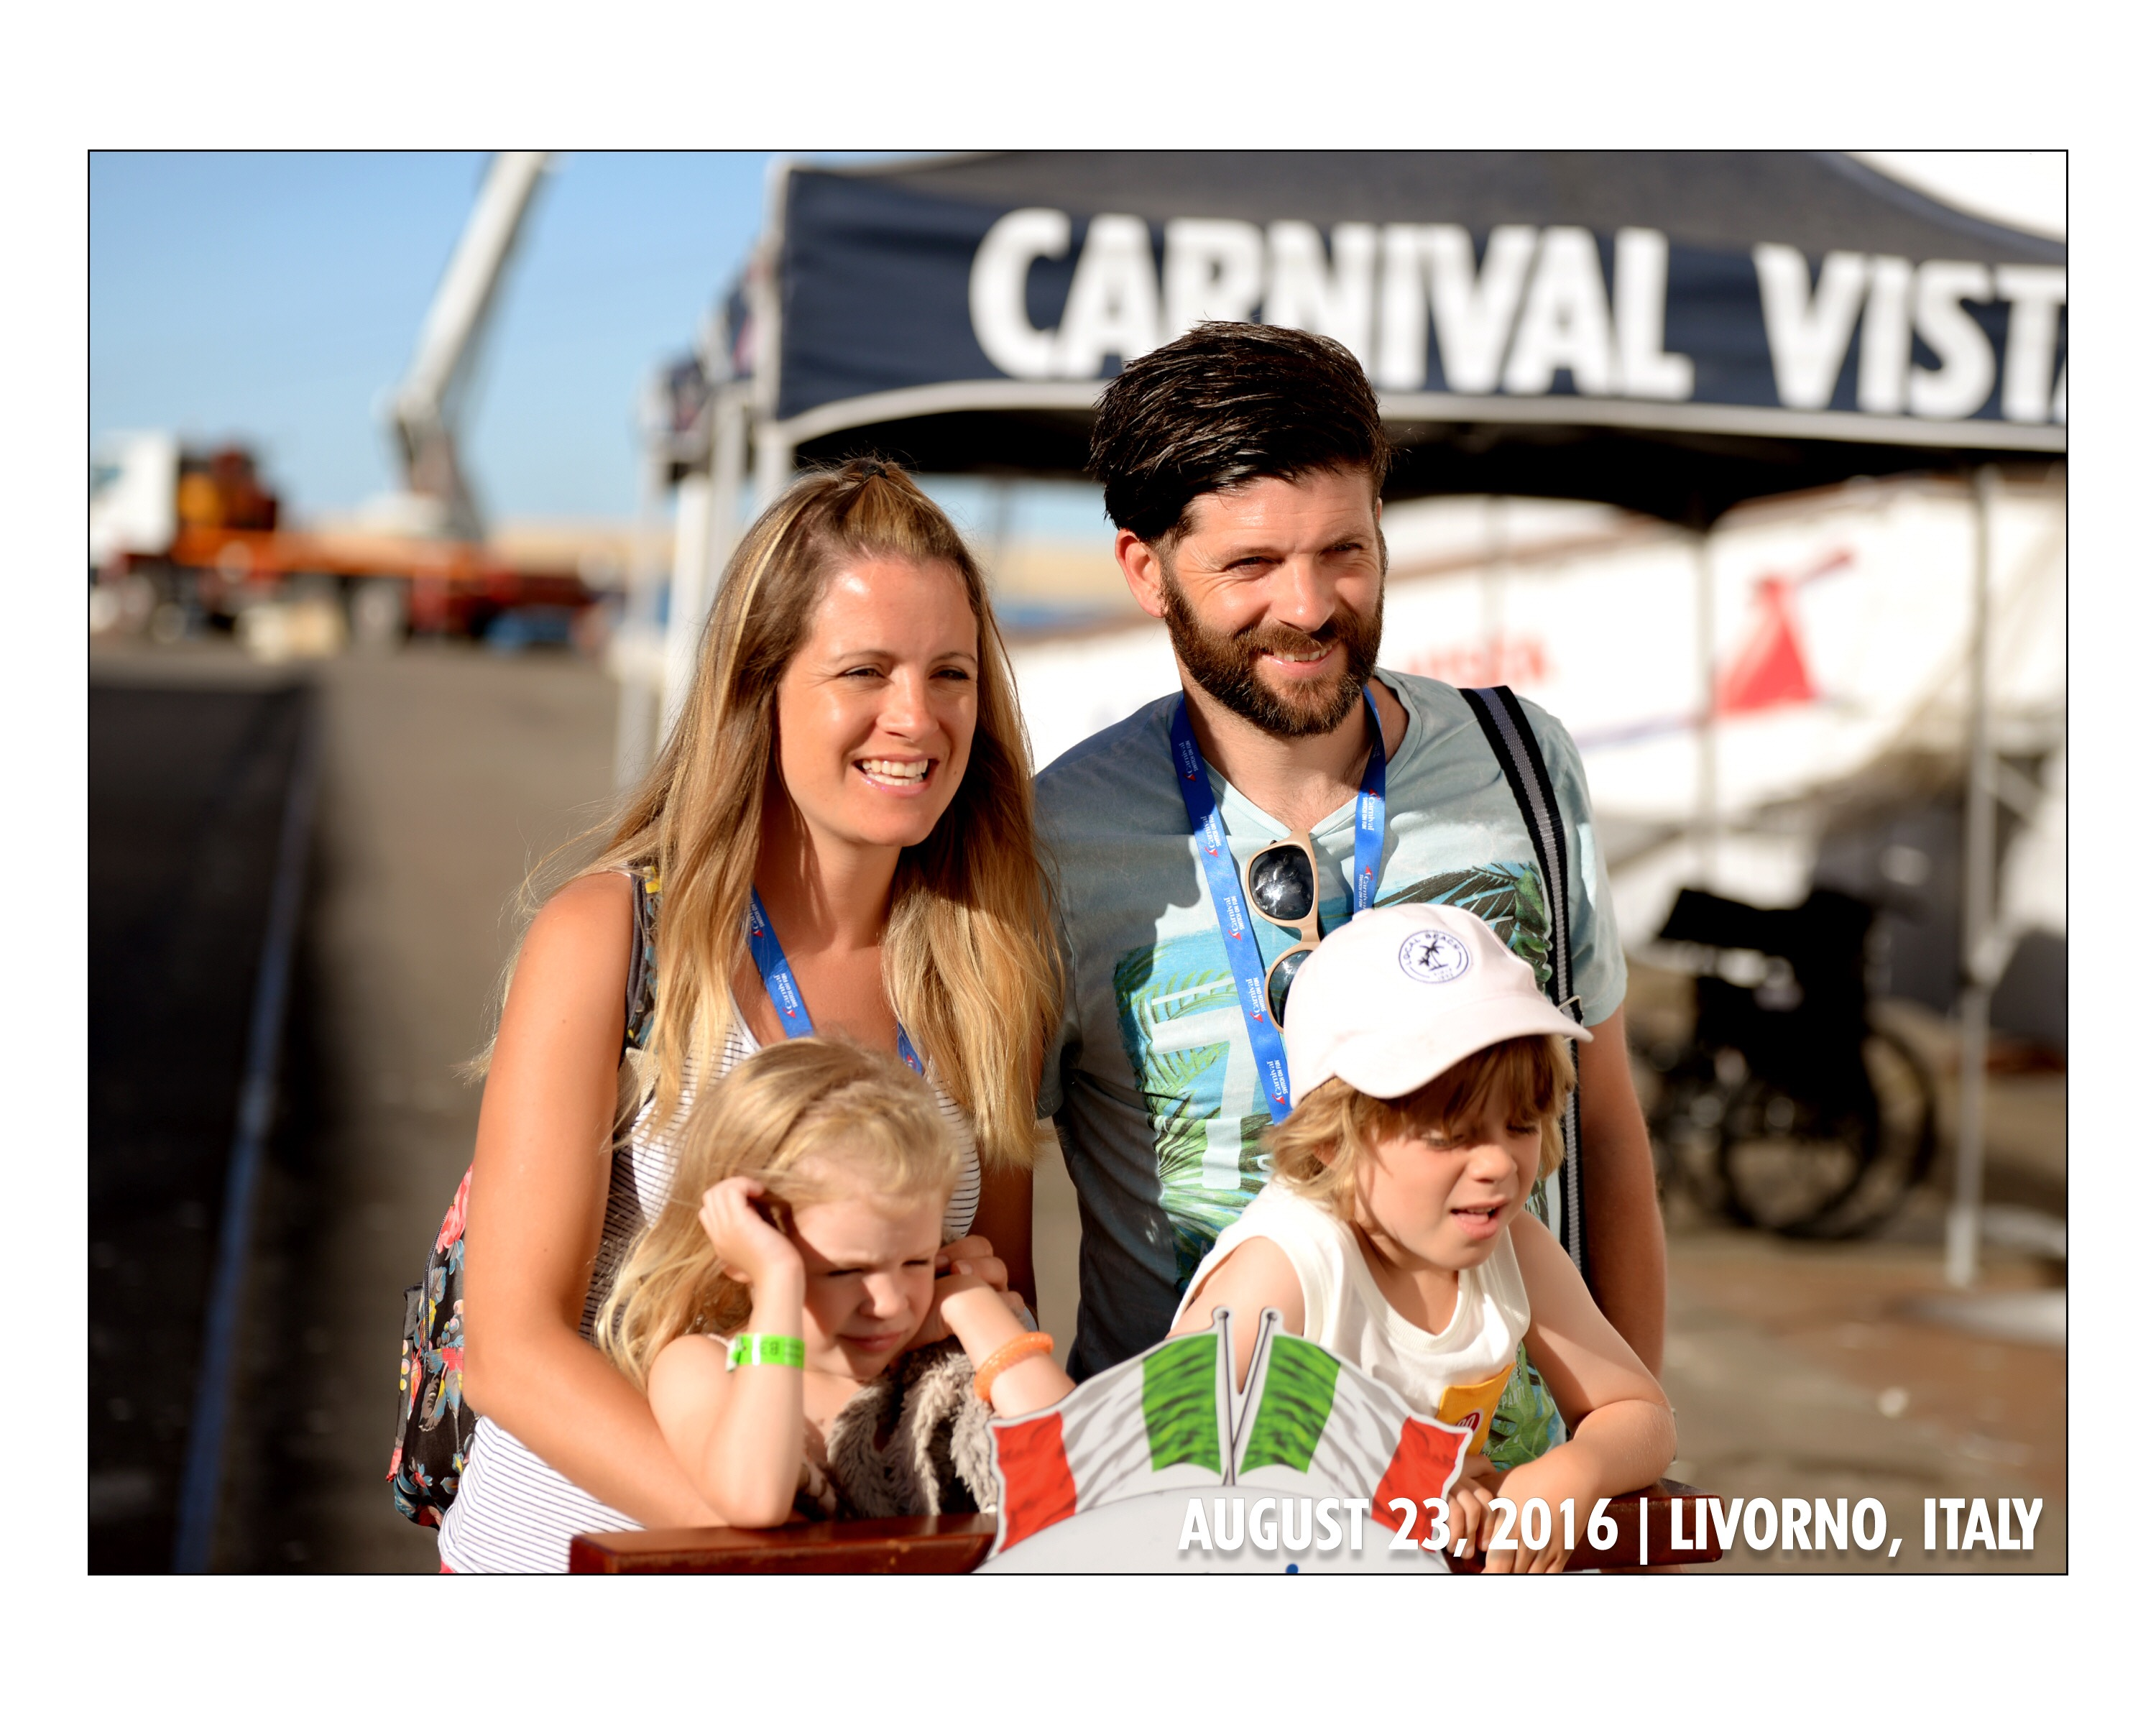 Our family cruise holiday onboard Carnival Vista